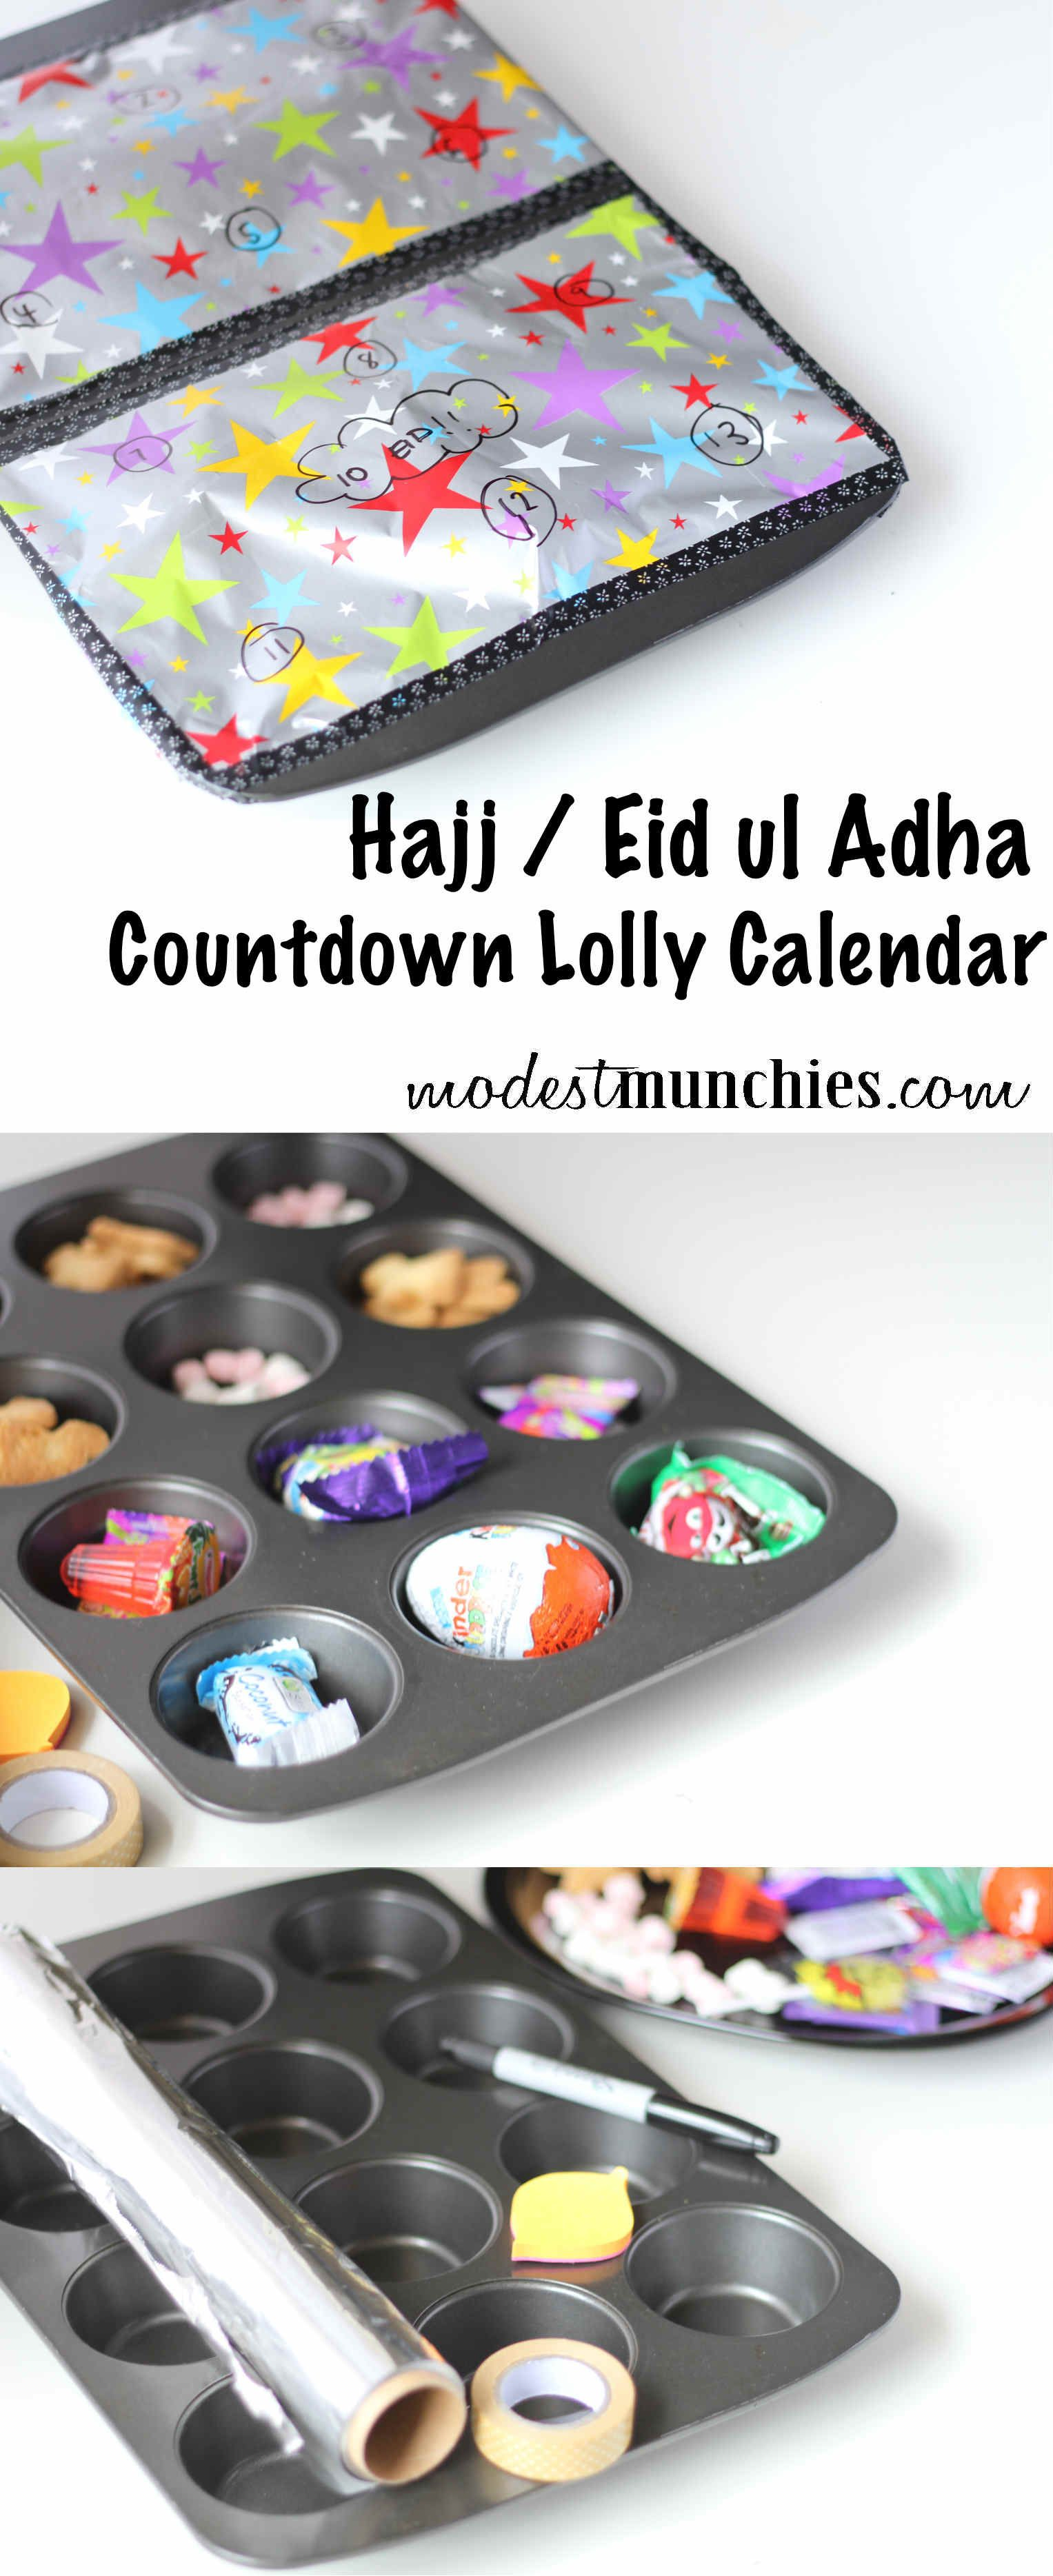 An easy muffin pan Hajj / Eid Lolly Countdown Calendar . This an advent calendar style countdown to the Eid and the end of Hajj.